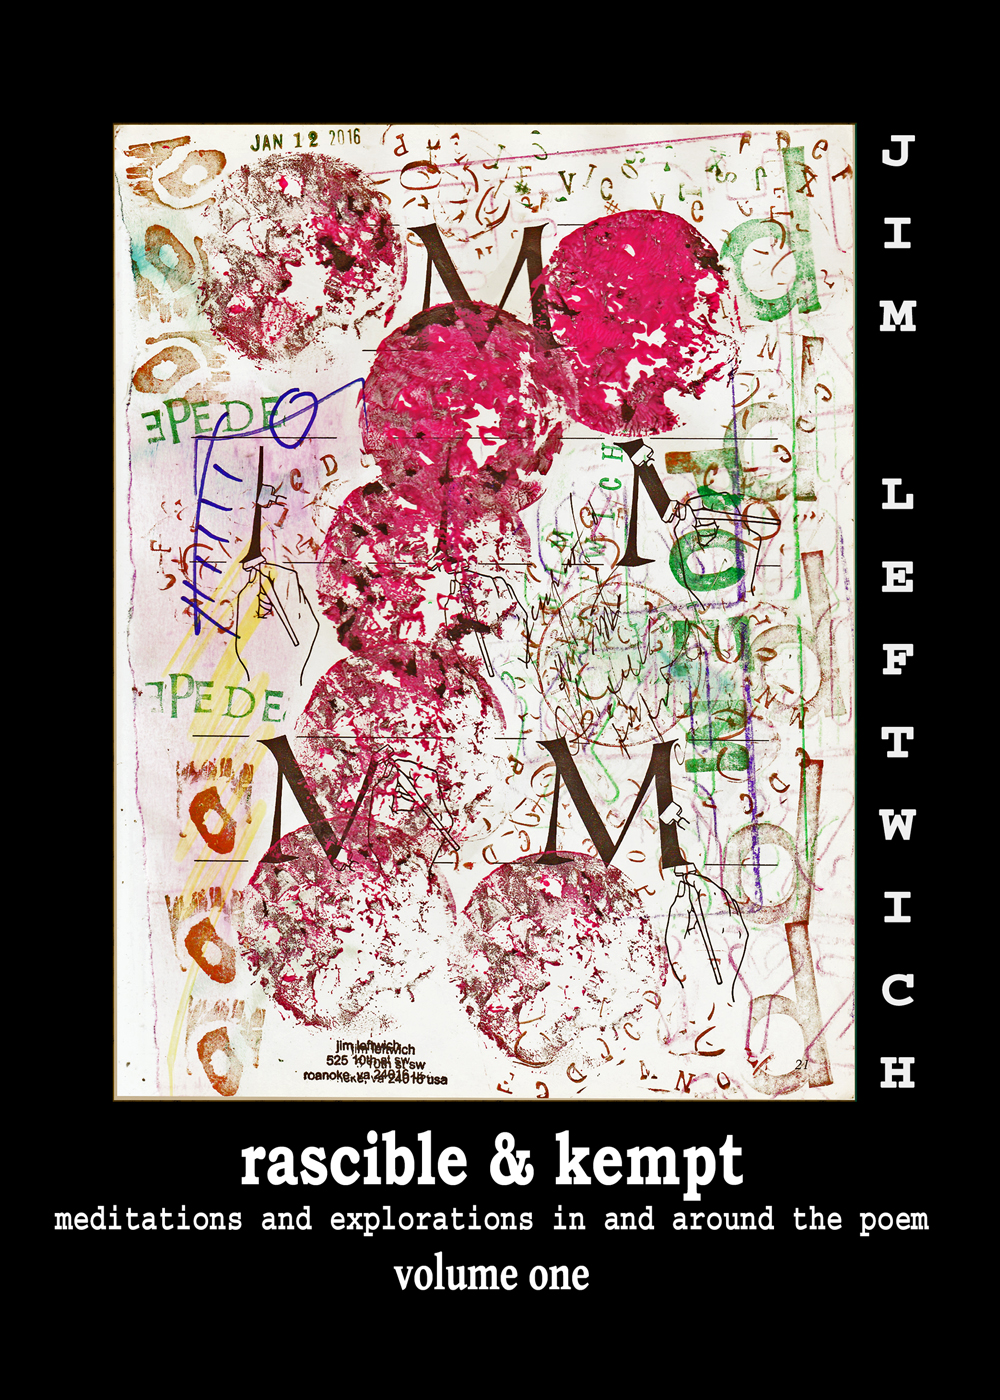 Rascible & Kempt: Meditations and Explorations in and around the Poem, vol. 1